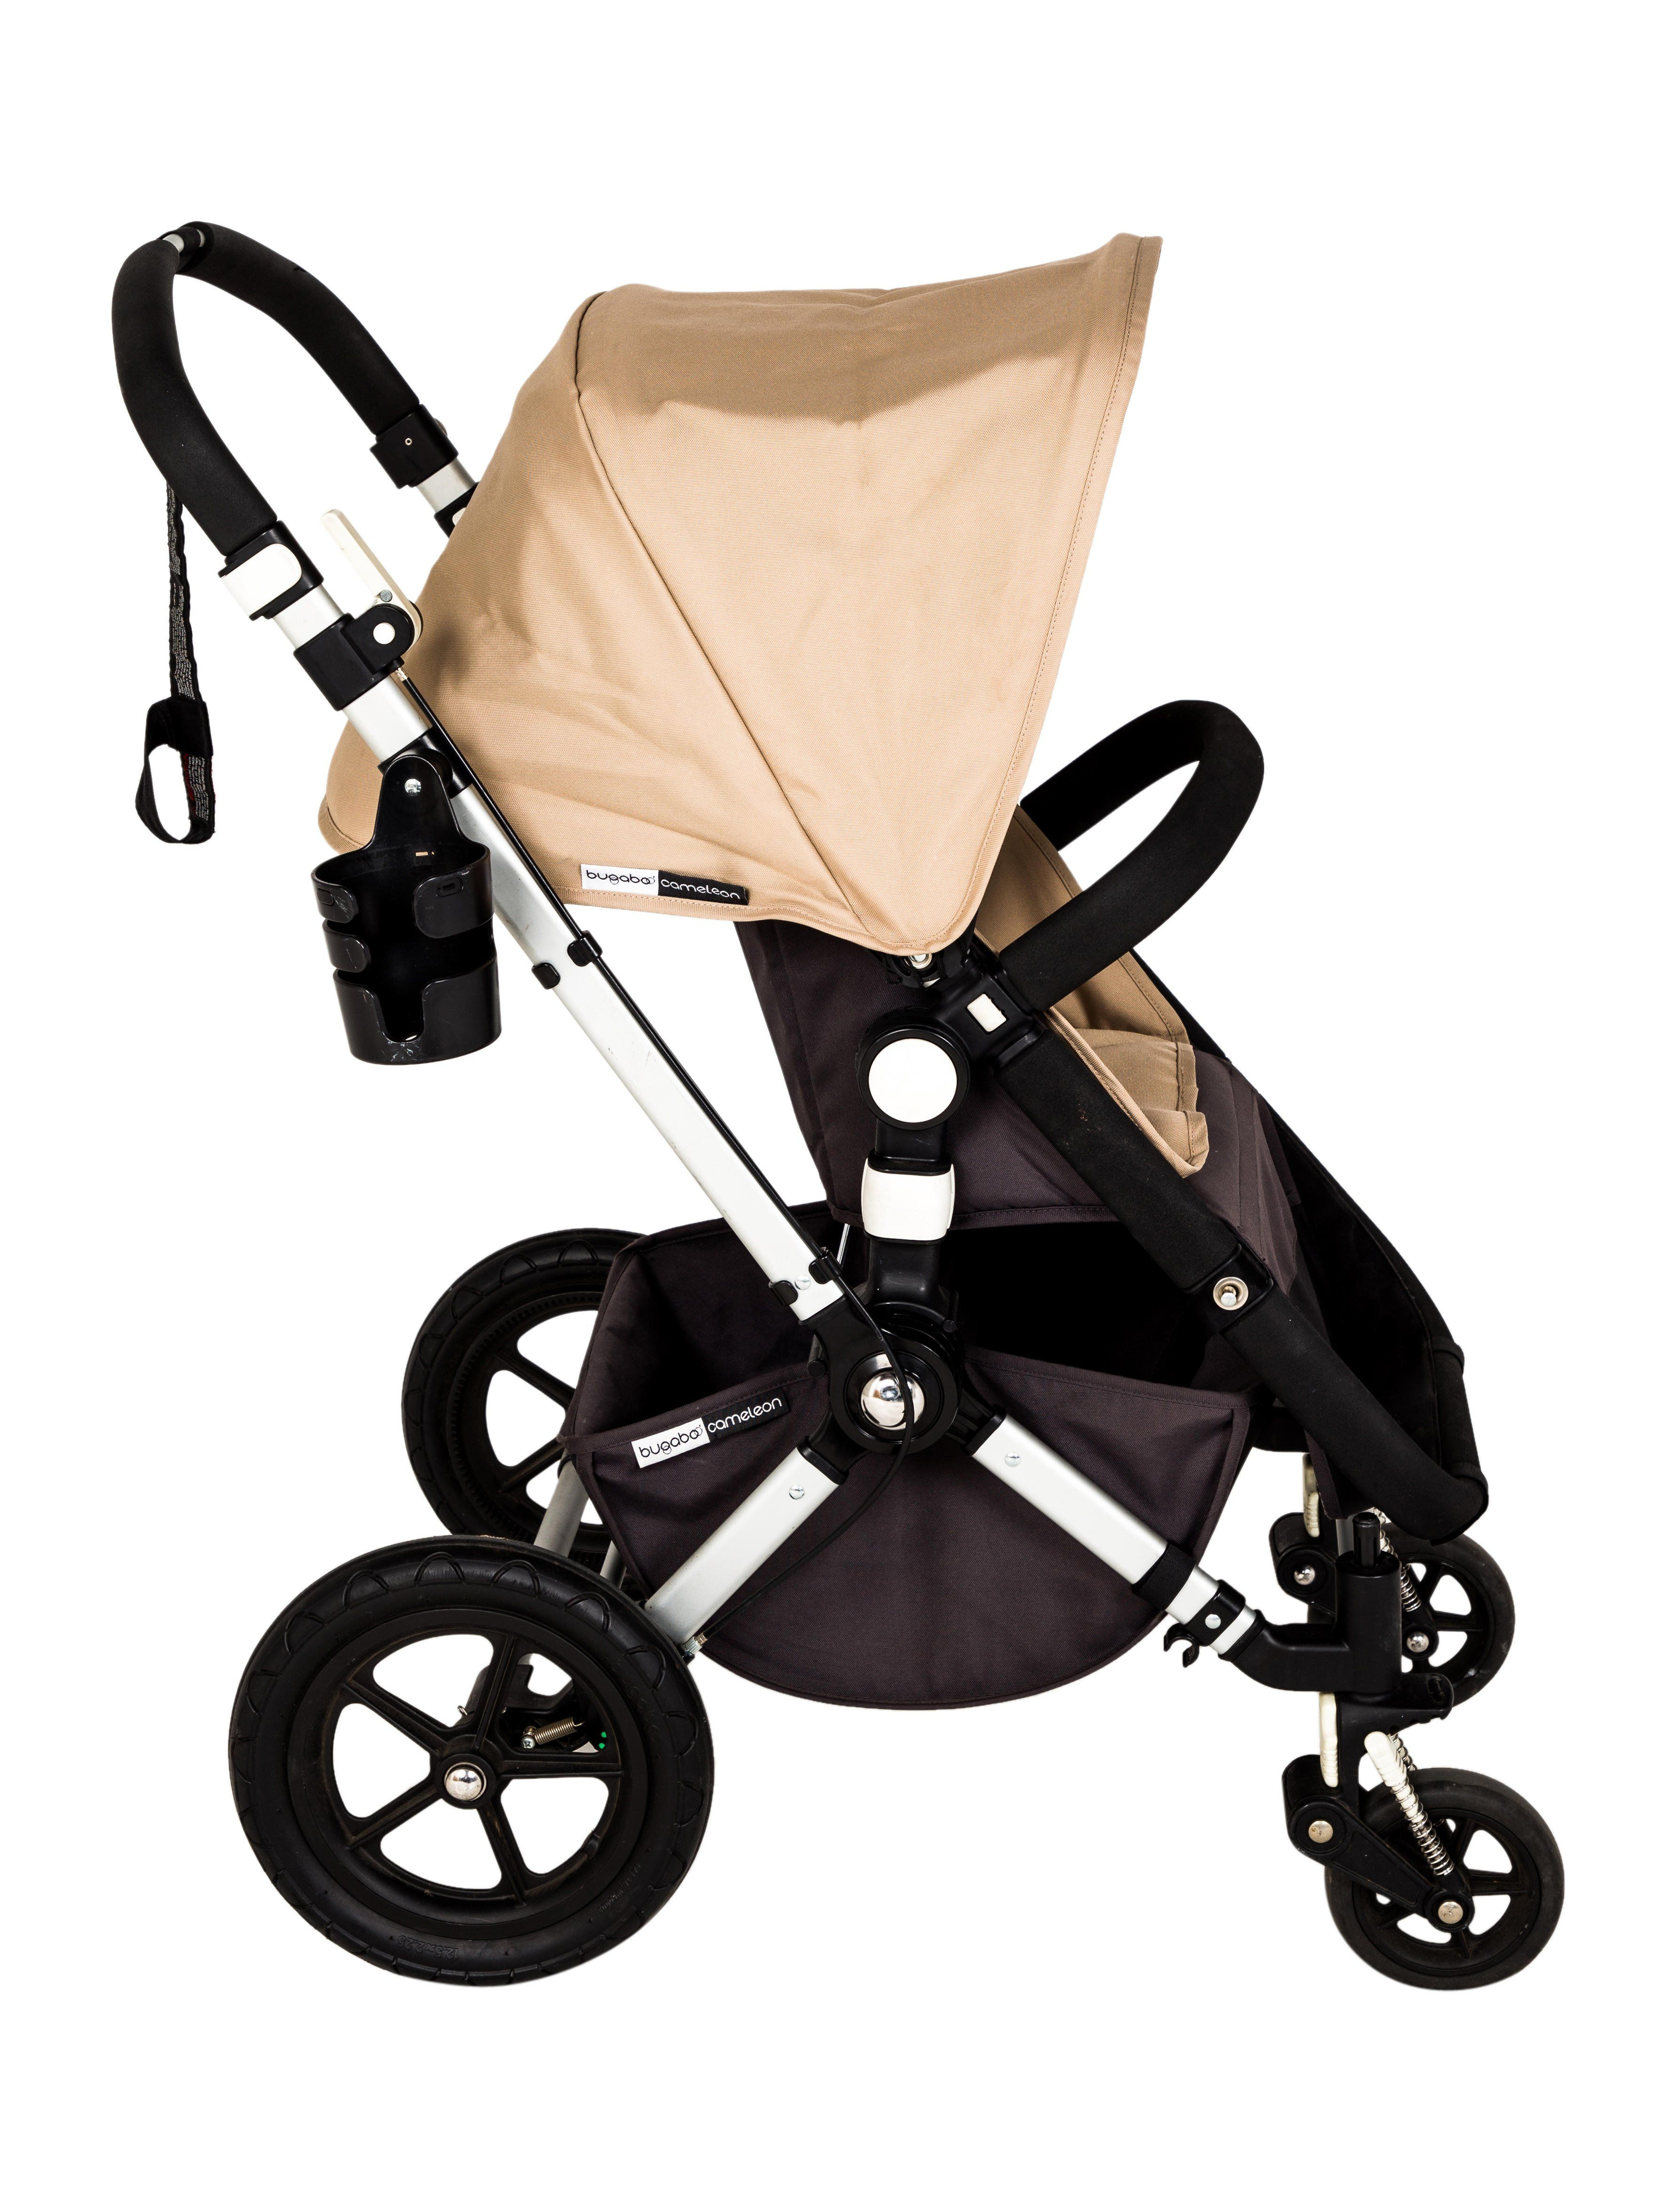 Black and beige Bagaboo Cameleon Stroller 1 with cup